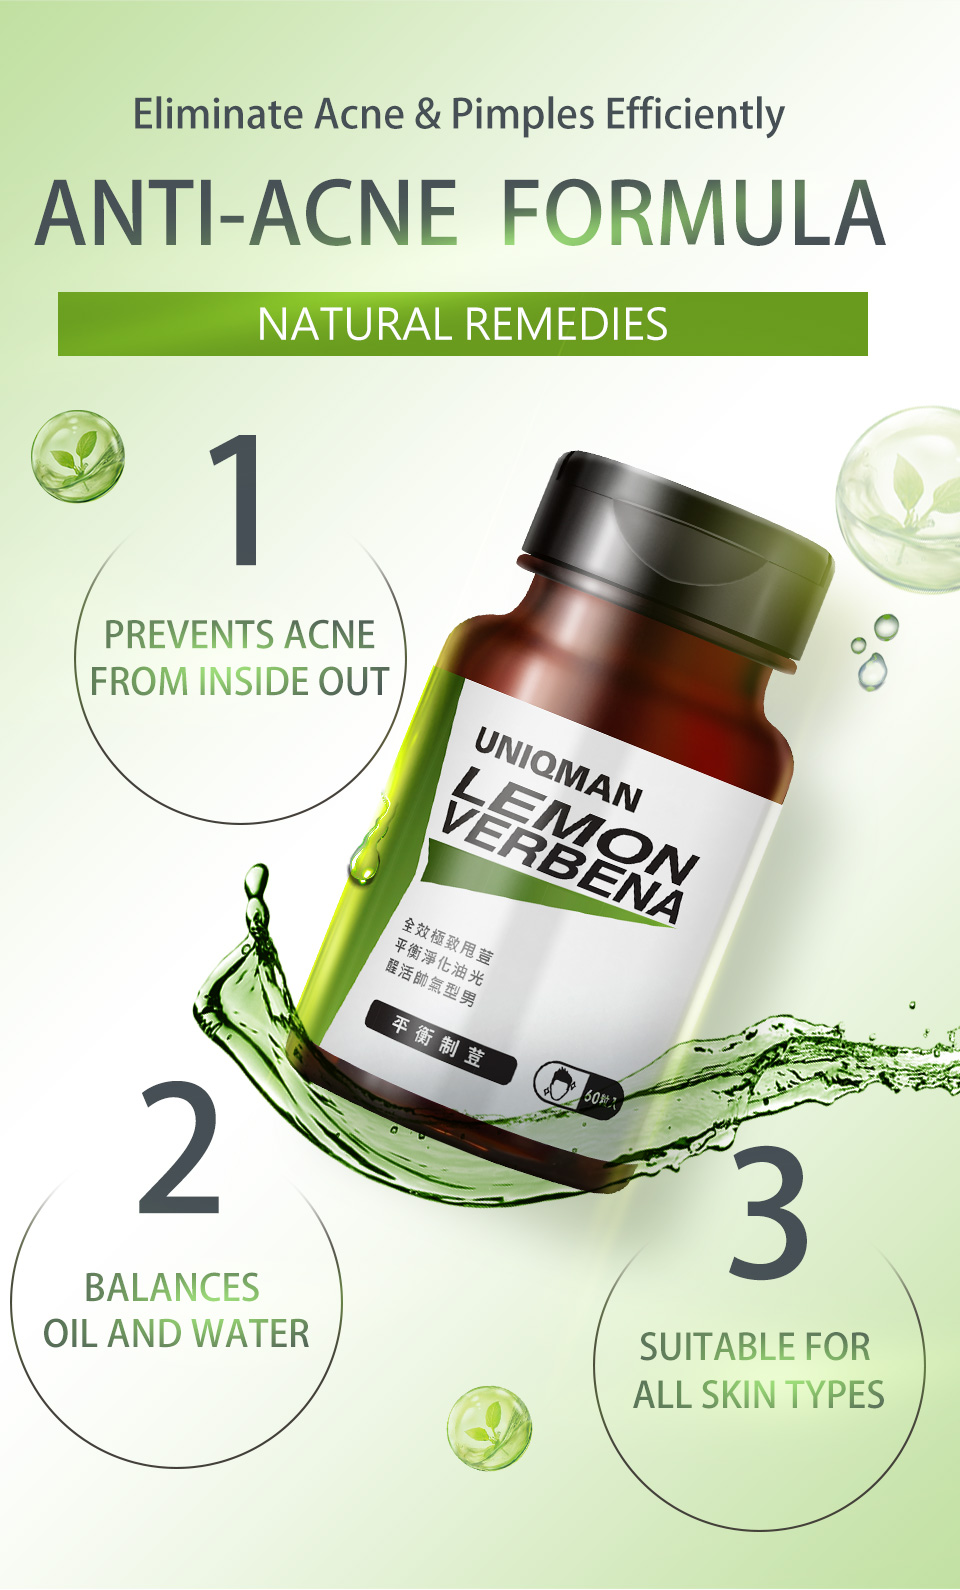 UNIQMAN LemonVerbena helps remove pimples and ache